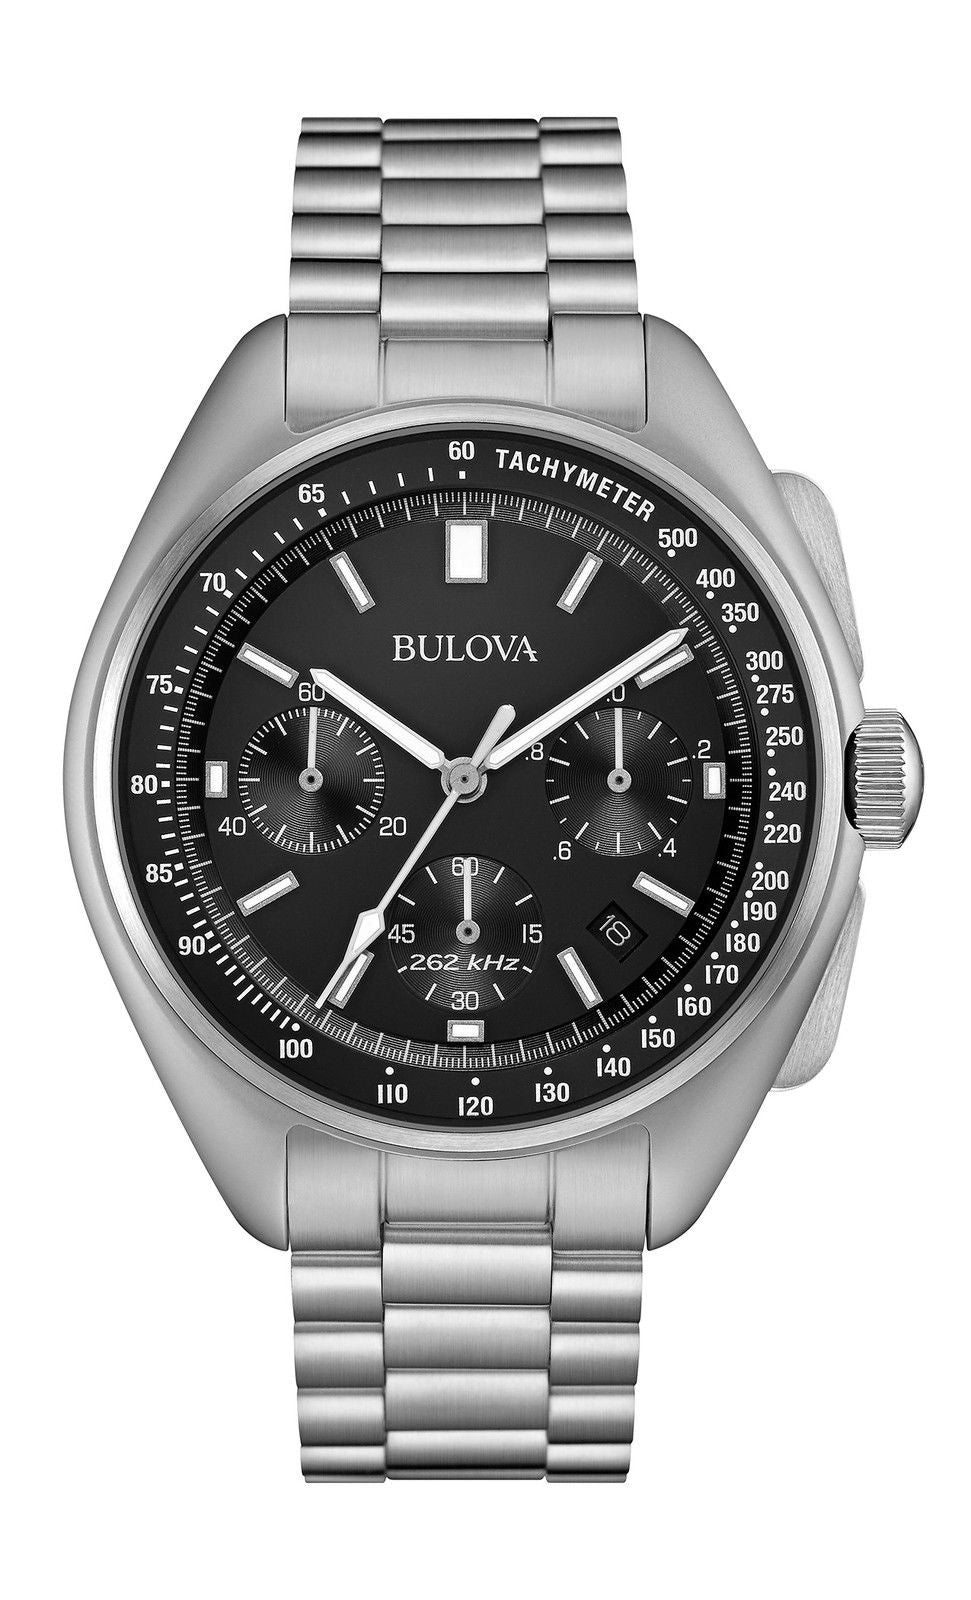 Bulova 96B258 Men's Special Edition Moon Chronograph Watch